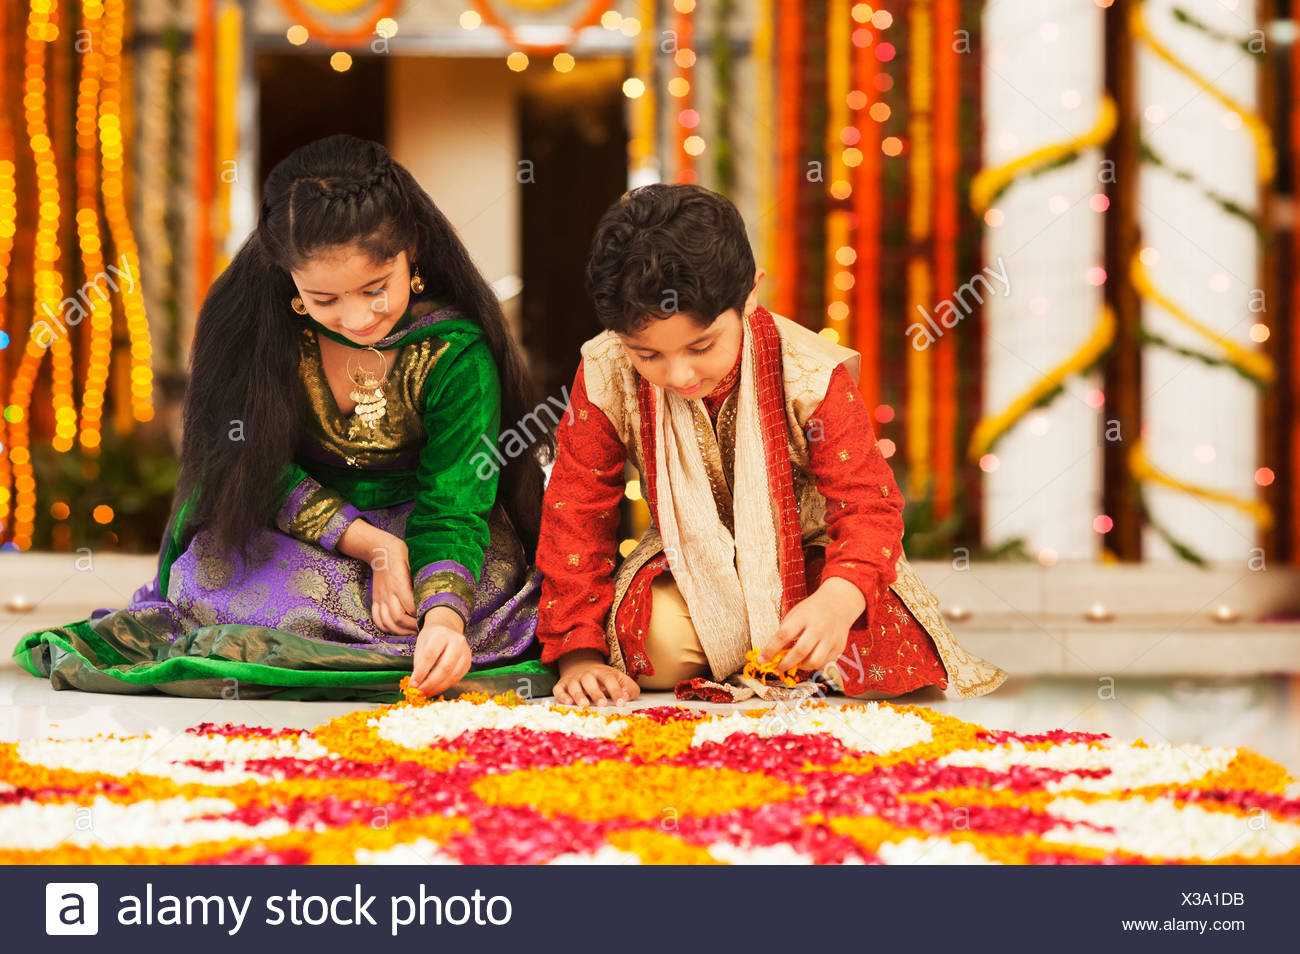 Children making rangoli on Diwali - Stock Image